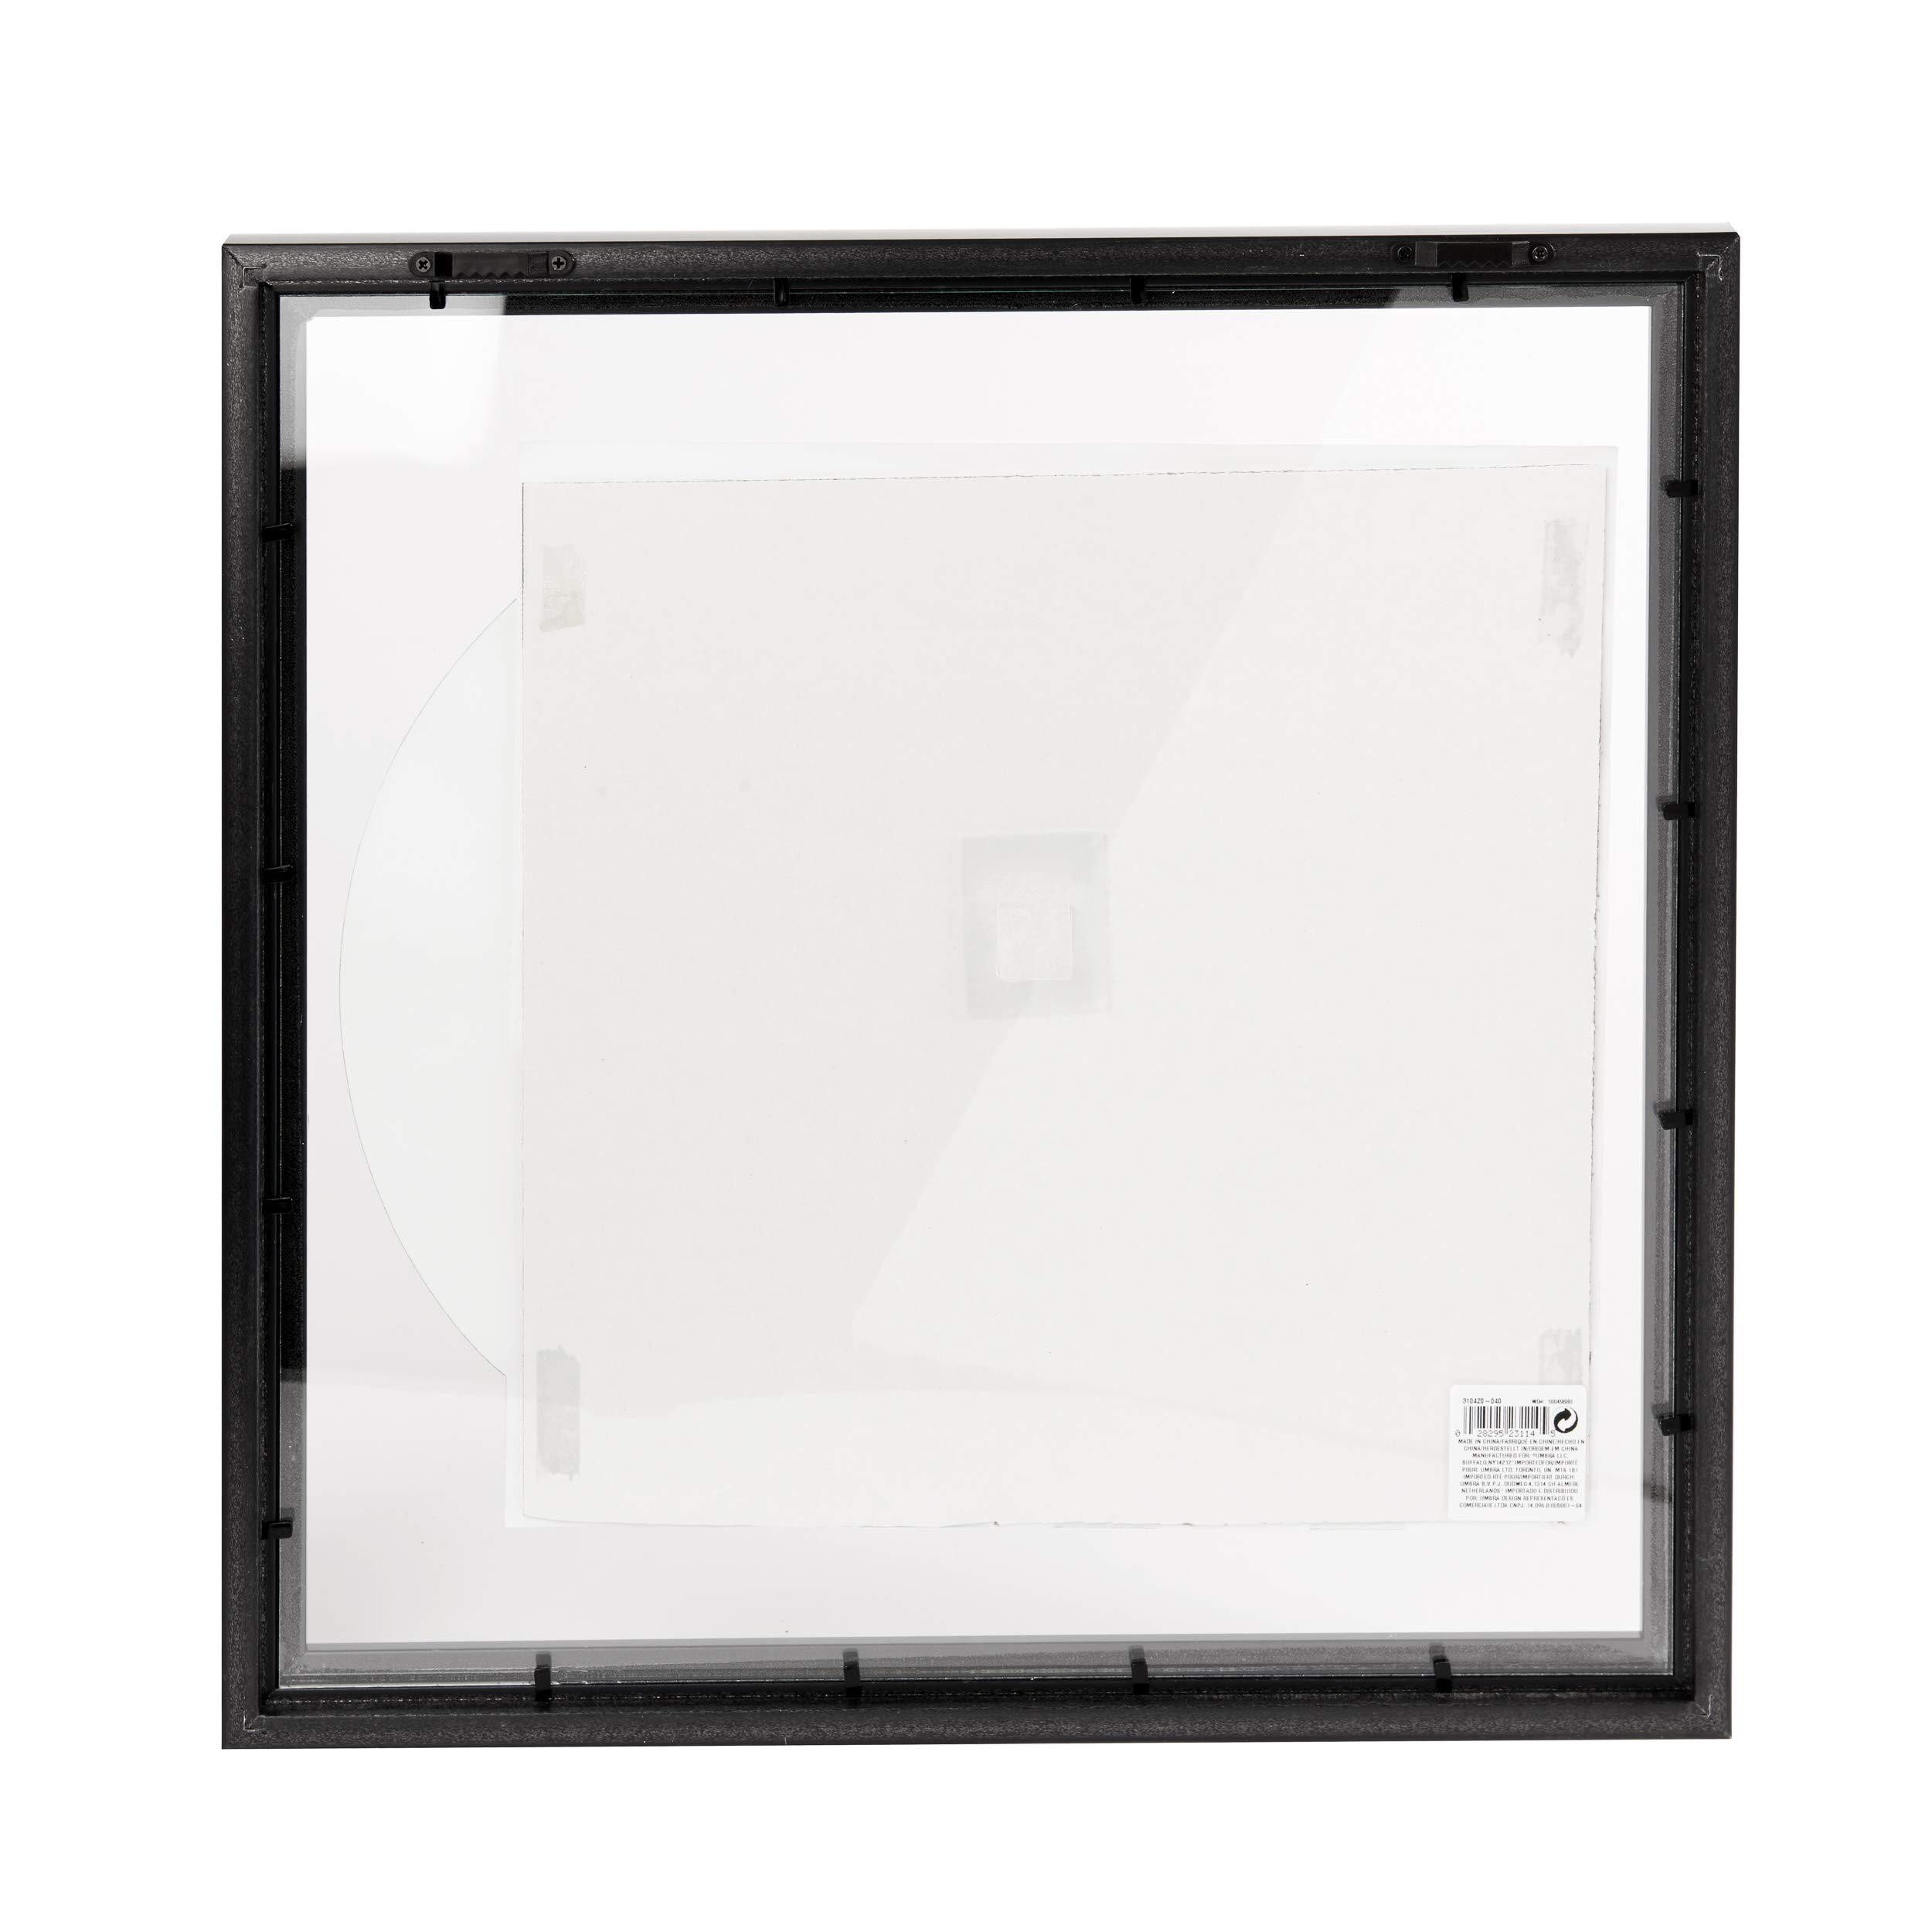 Umbra Record Album Frame 14-1/2x14-1/2-Inch, Modern Picture Frame Designed to Display a Floating 12-Inch by 12-Inch Album Cover by Umbra (Image #8)